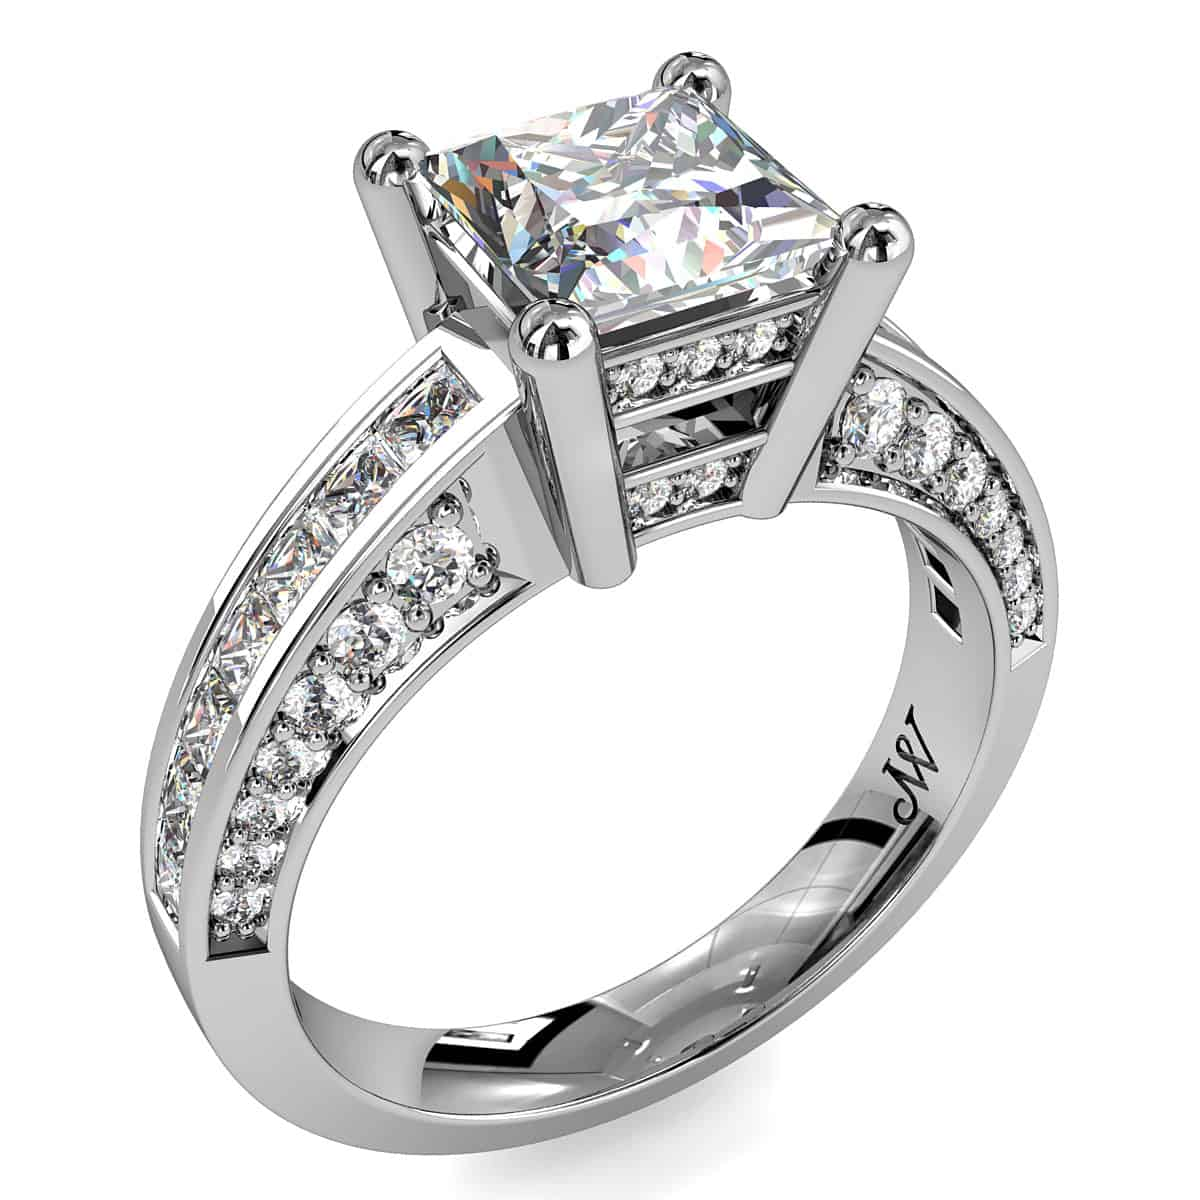 Princess cut diamond solitaire engagement ring whitakers for Princess cut solitaire engagement ring with wedding band